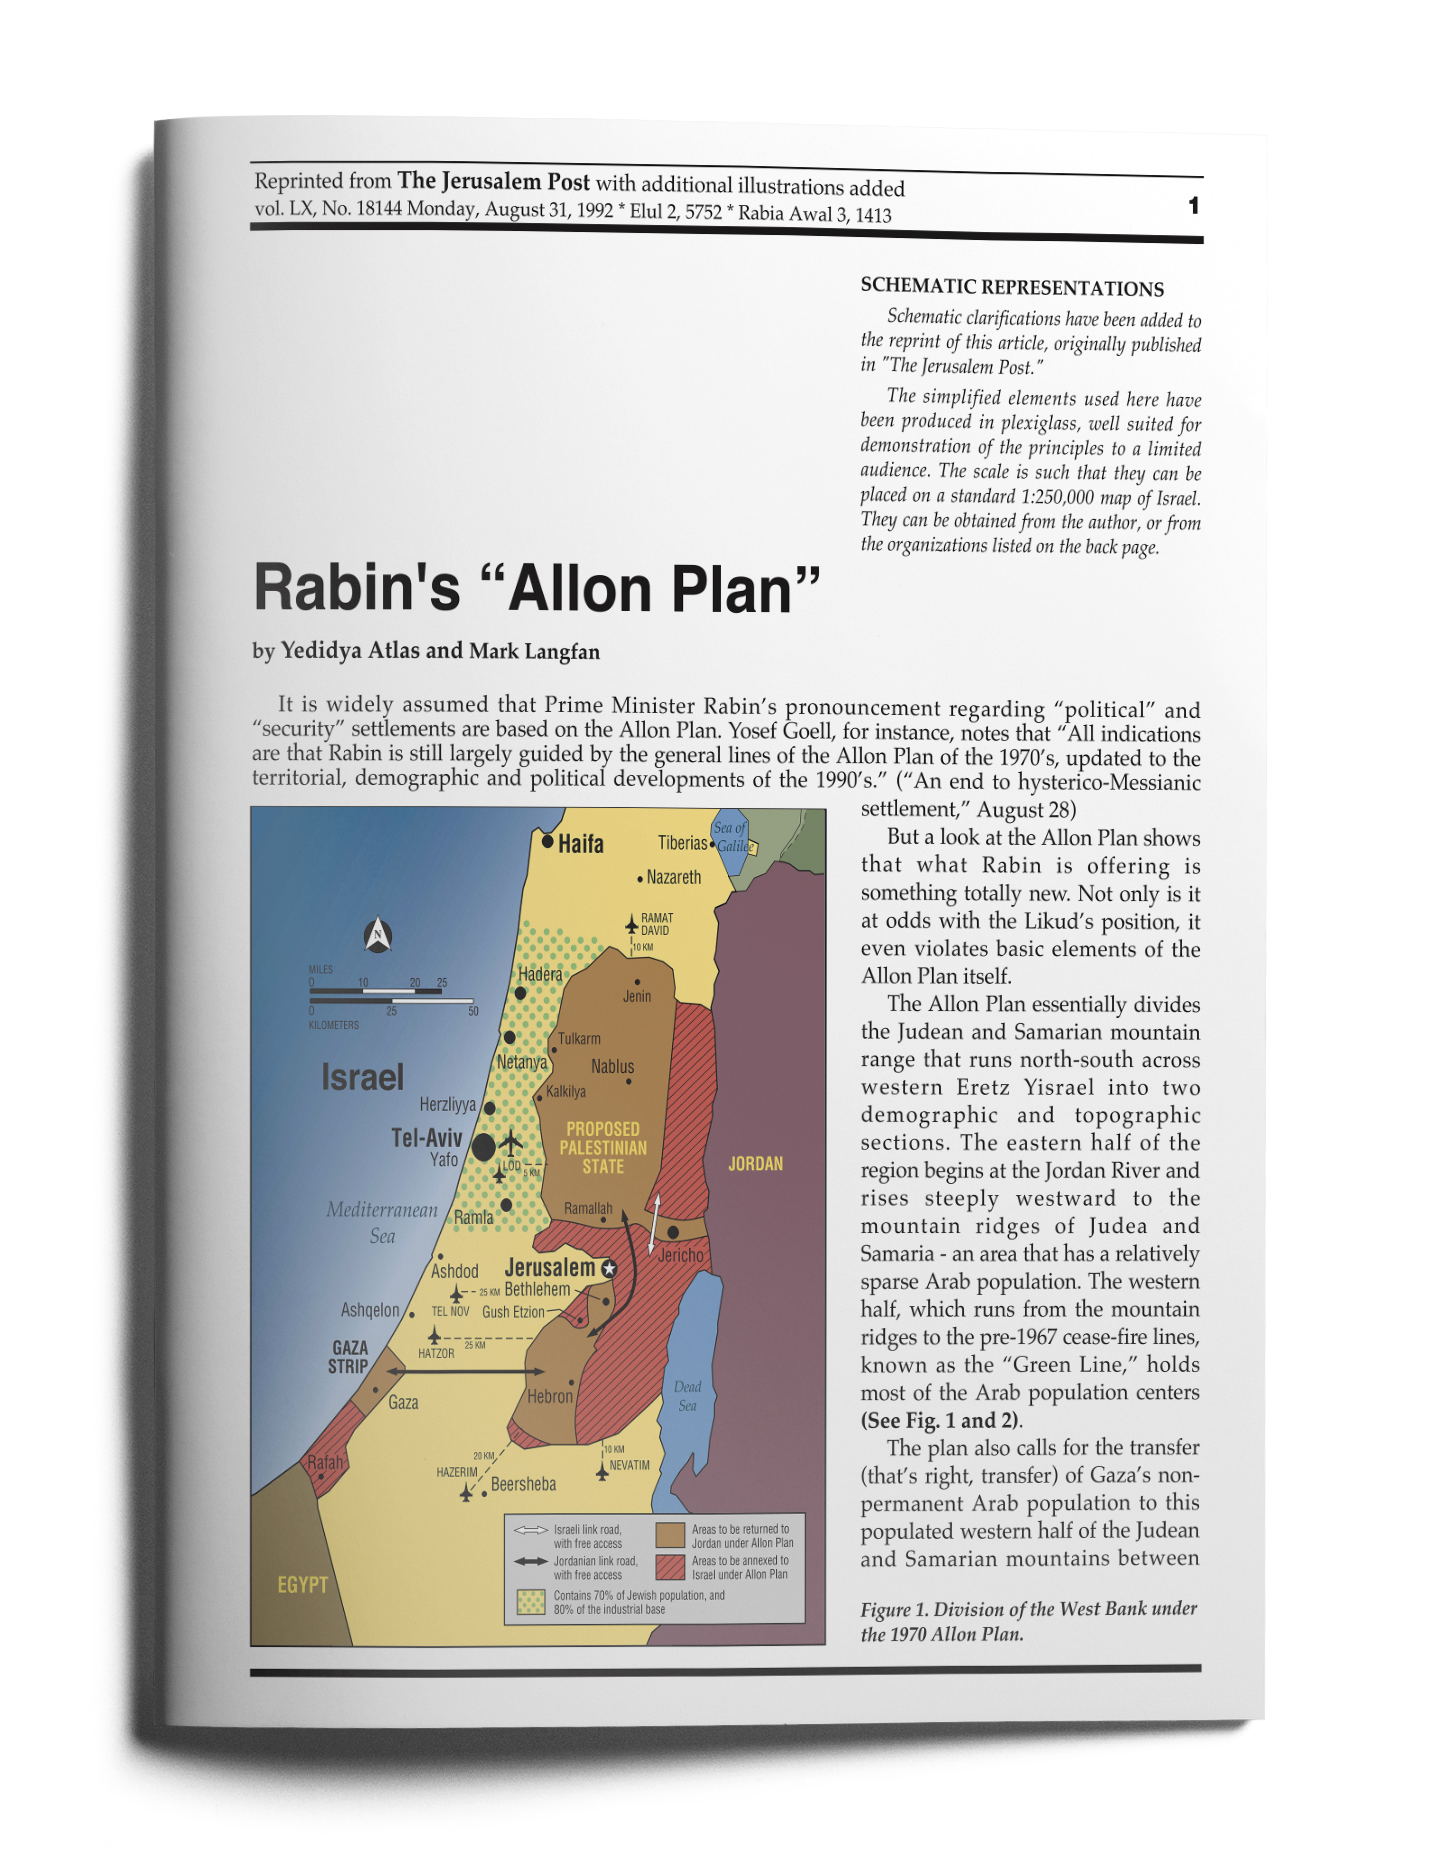 rabins allon plan